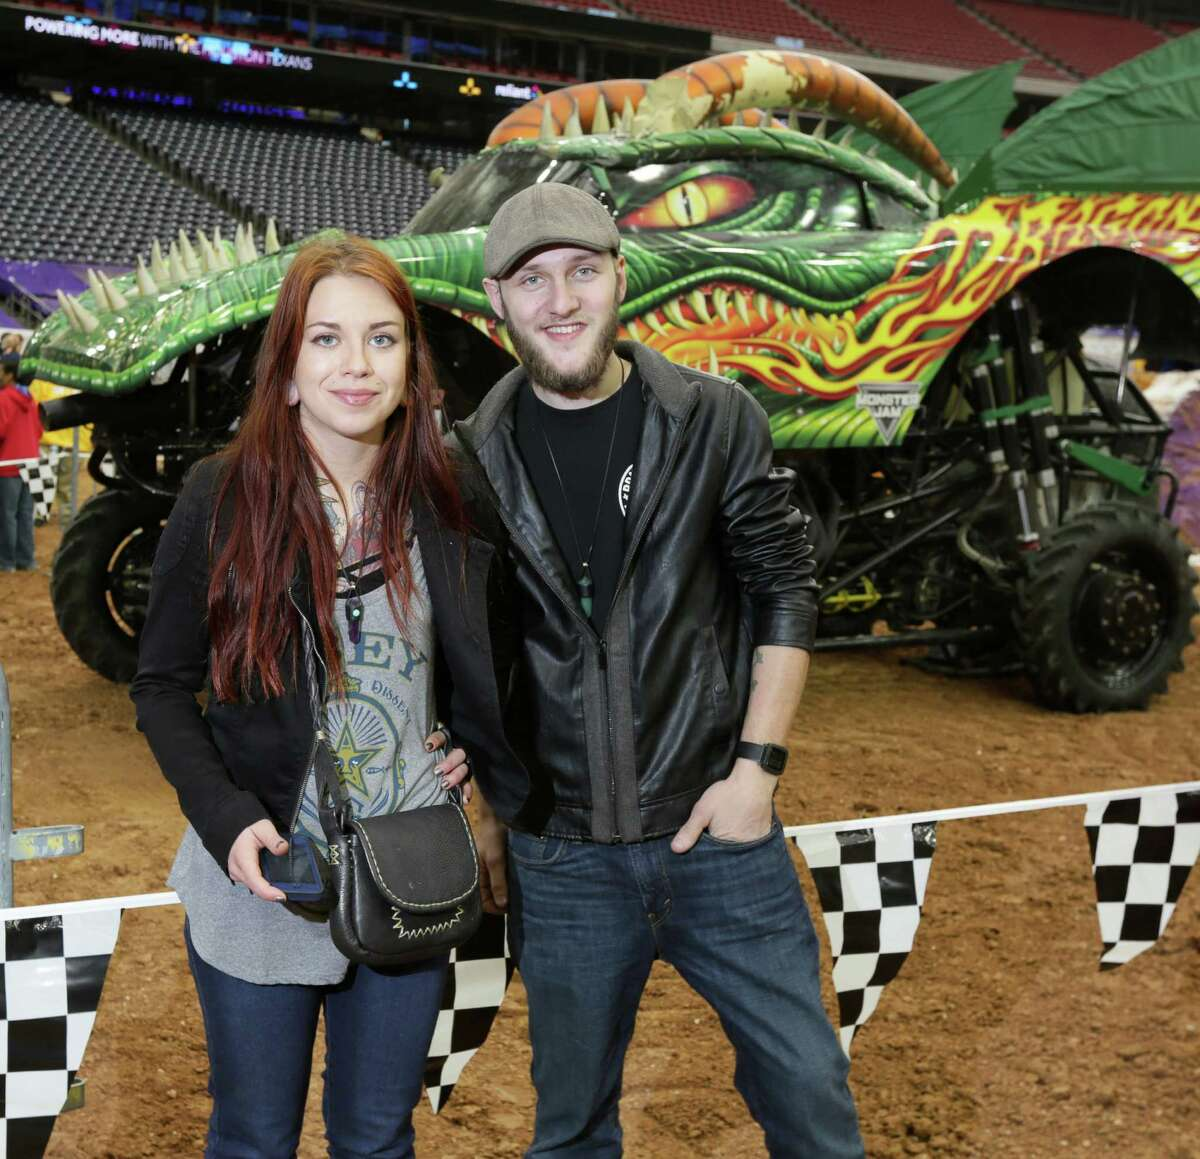 People pose for a photo at the Pit Party for Monster Jam at NRG Stadium Sunday, Jan. 24, 2016, in Houston.